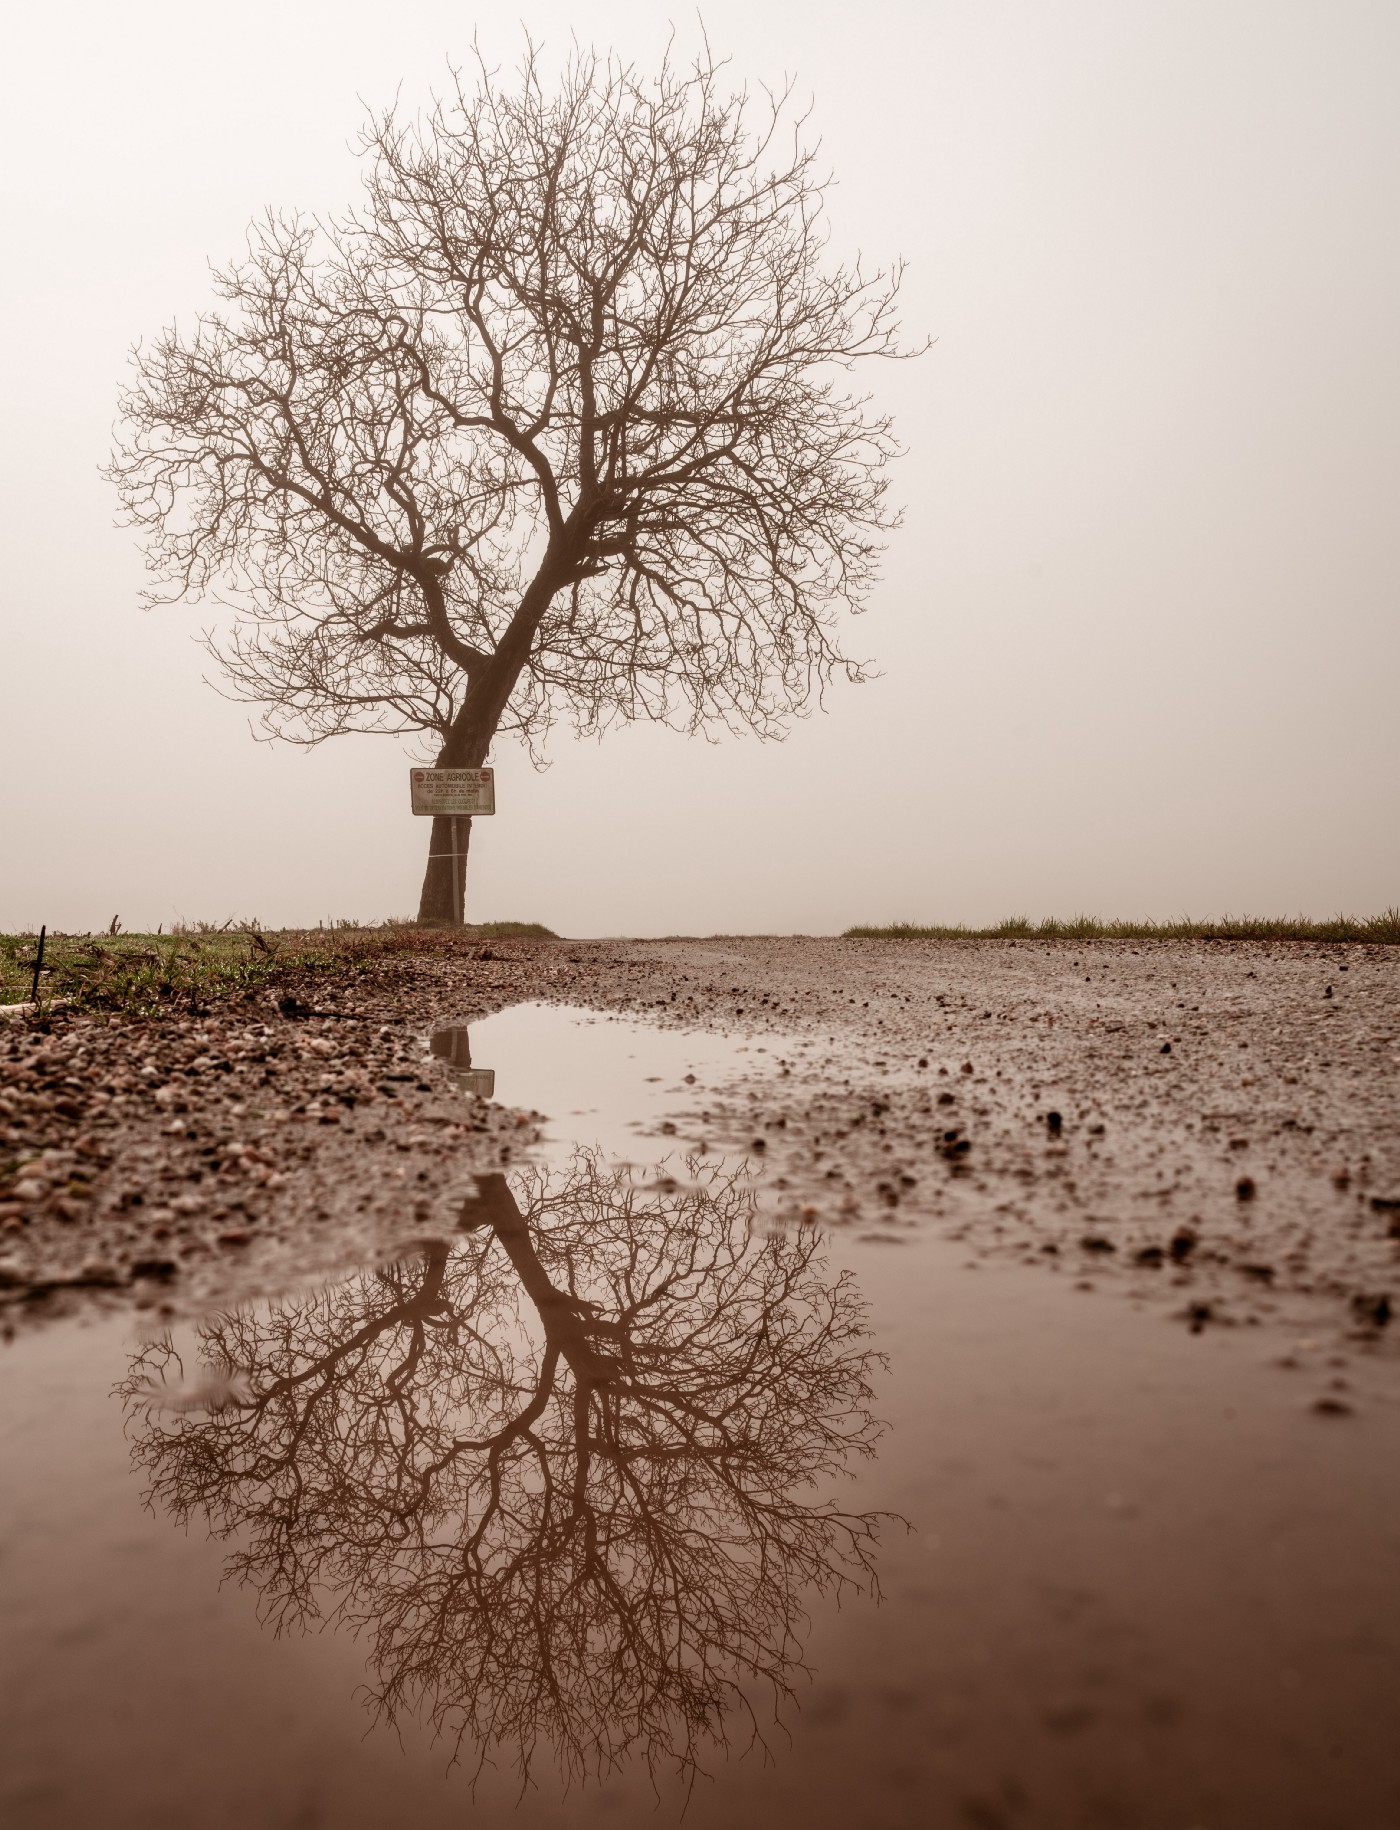 Old, leafless tree surrounded by muddy, lifeless ground. Image in sepia, daytime.